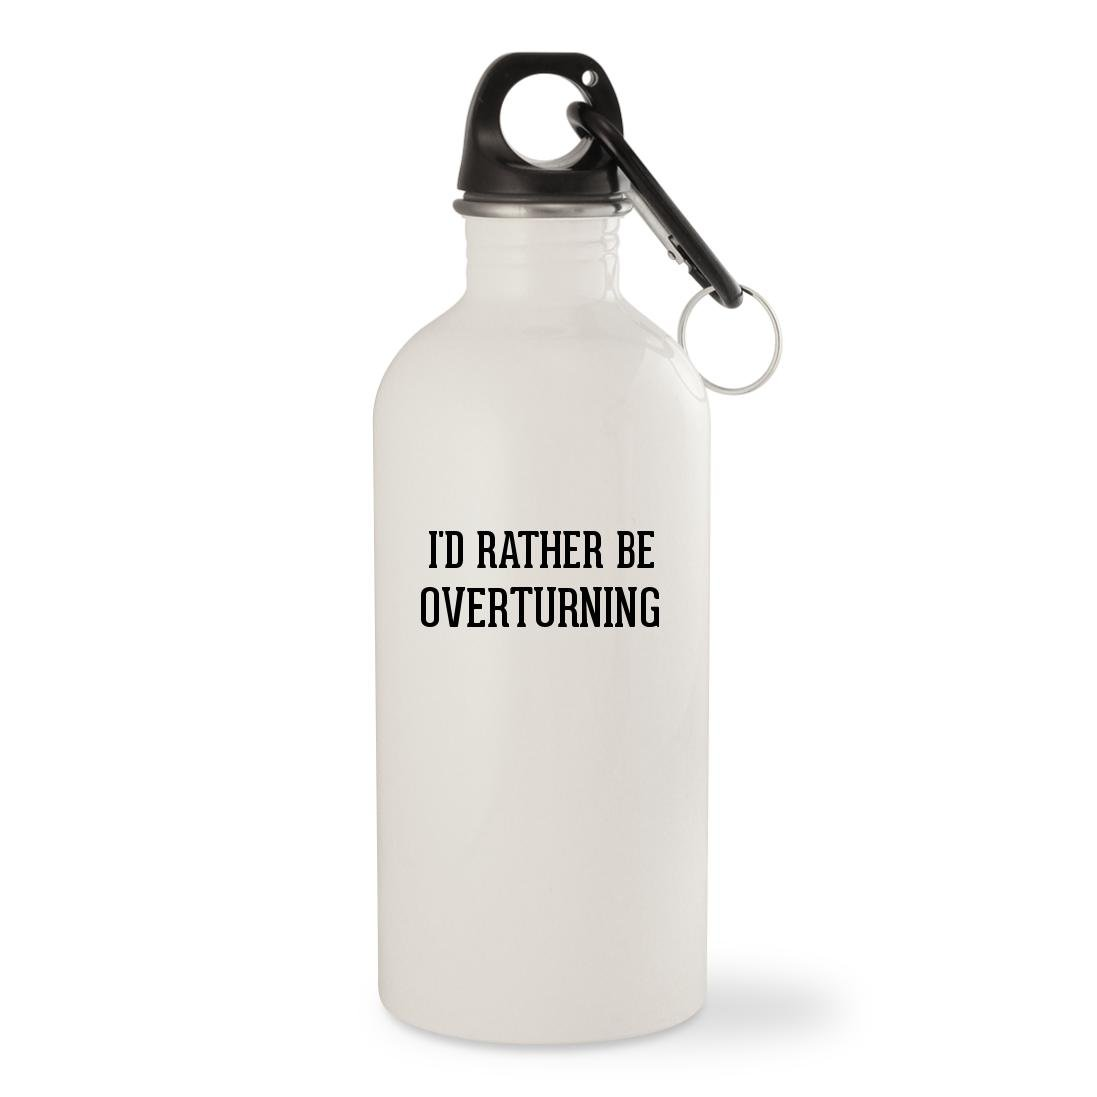 I'd Rather Be OVERTURNING - White 20oz Stainless Steel Water Bottle with Carabiner